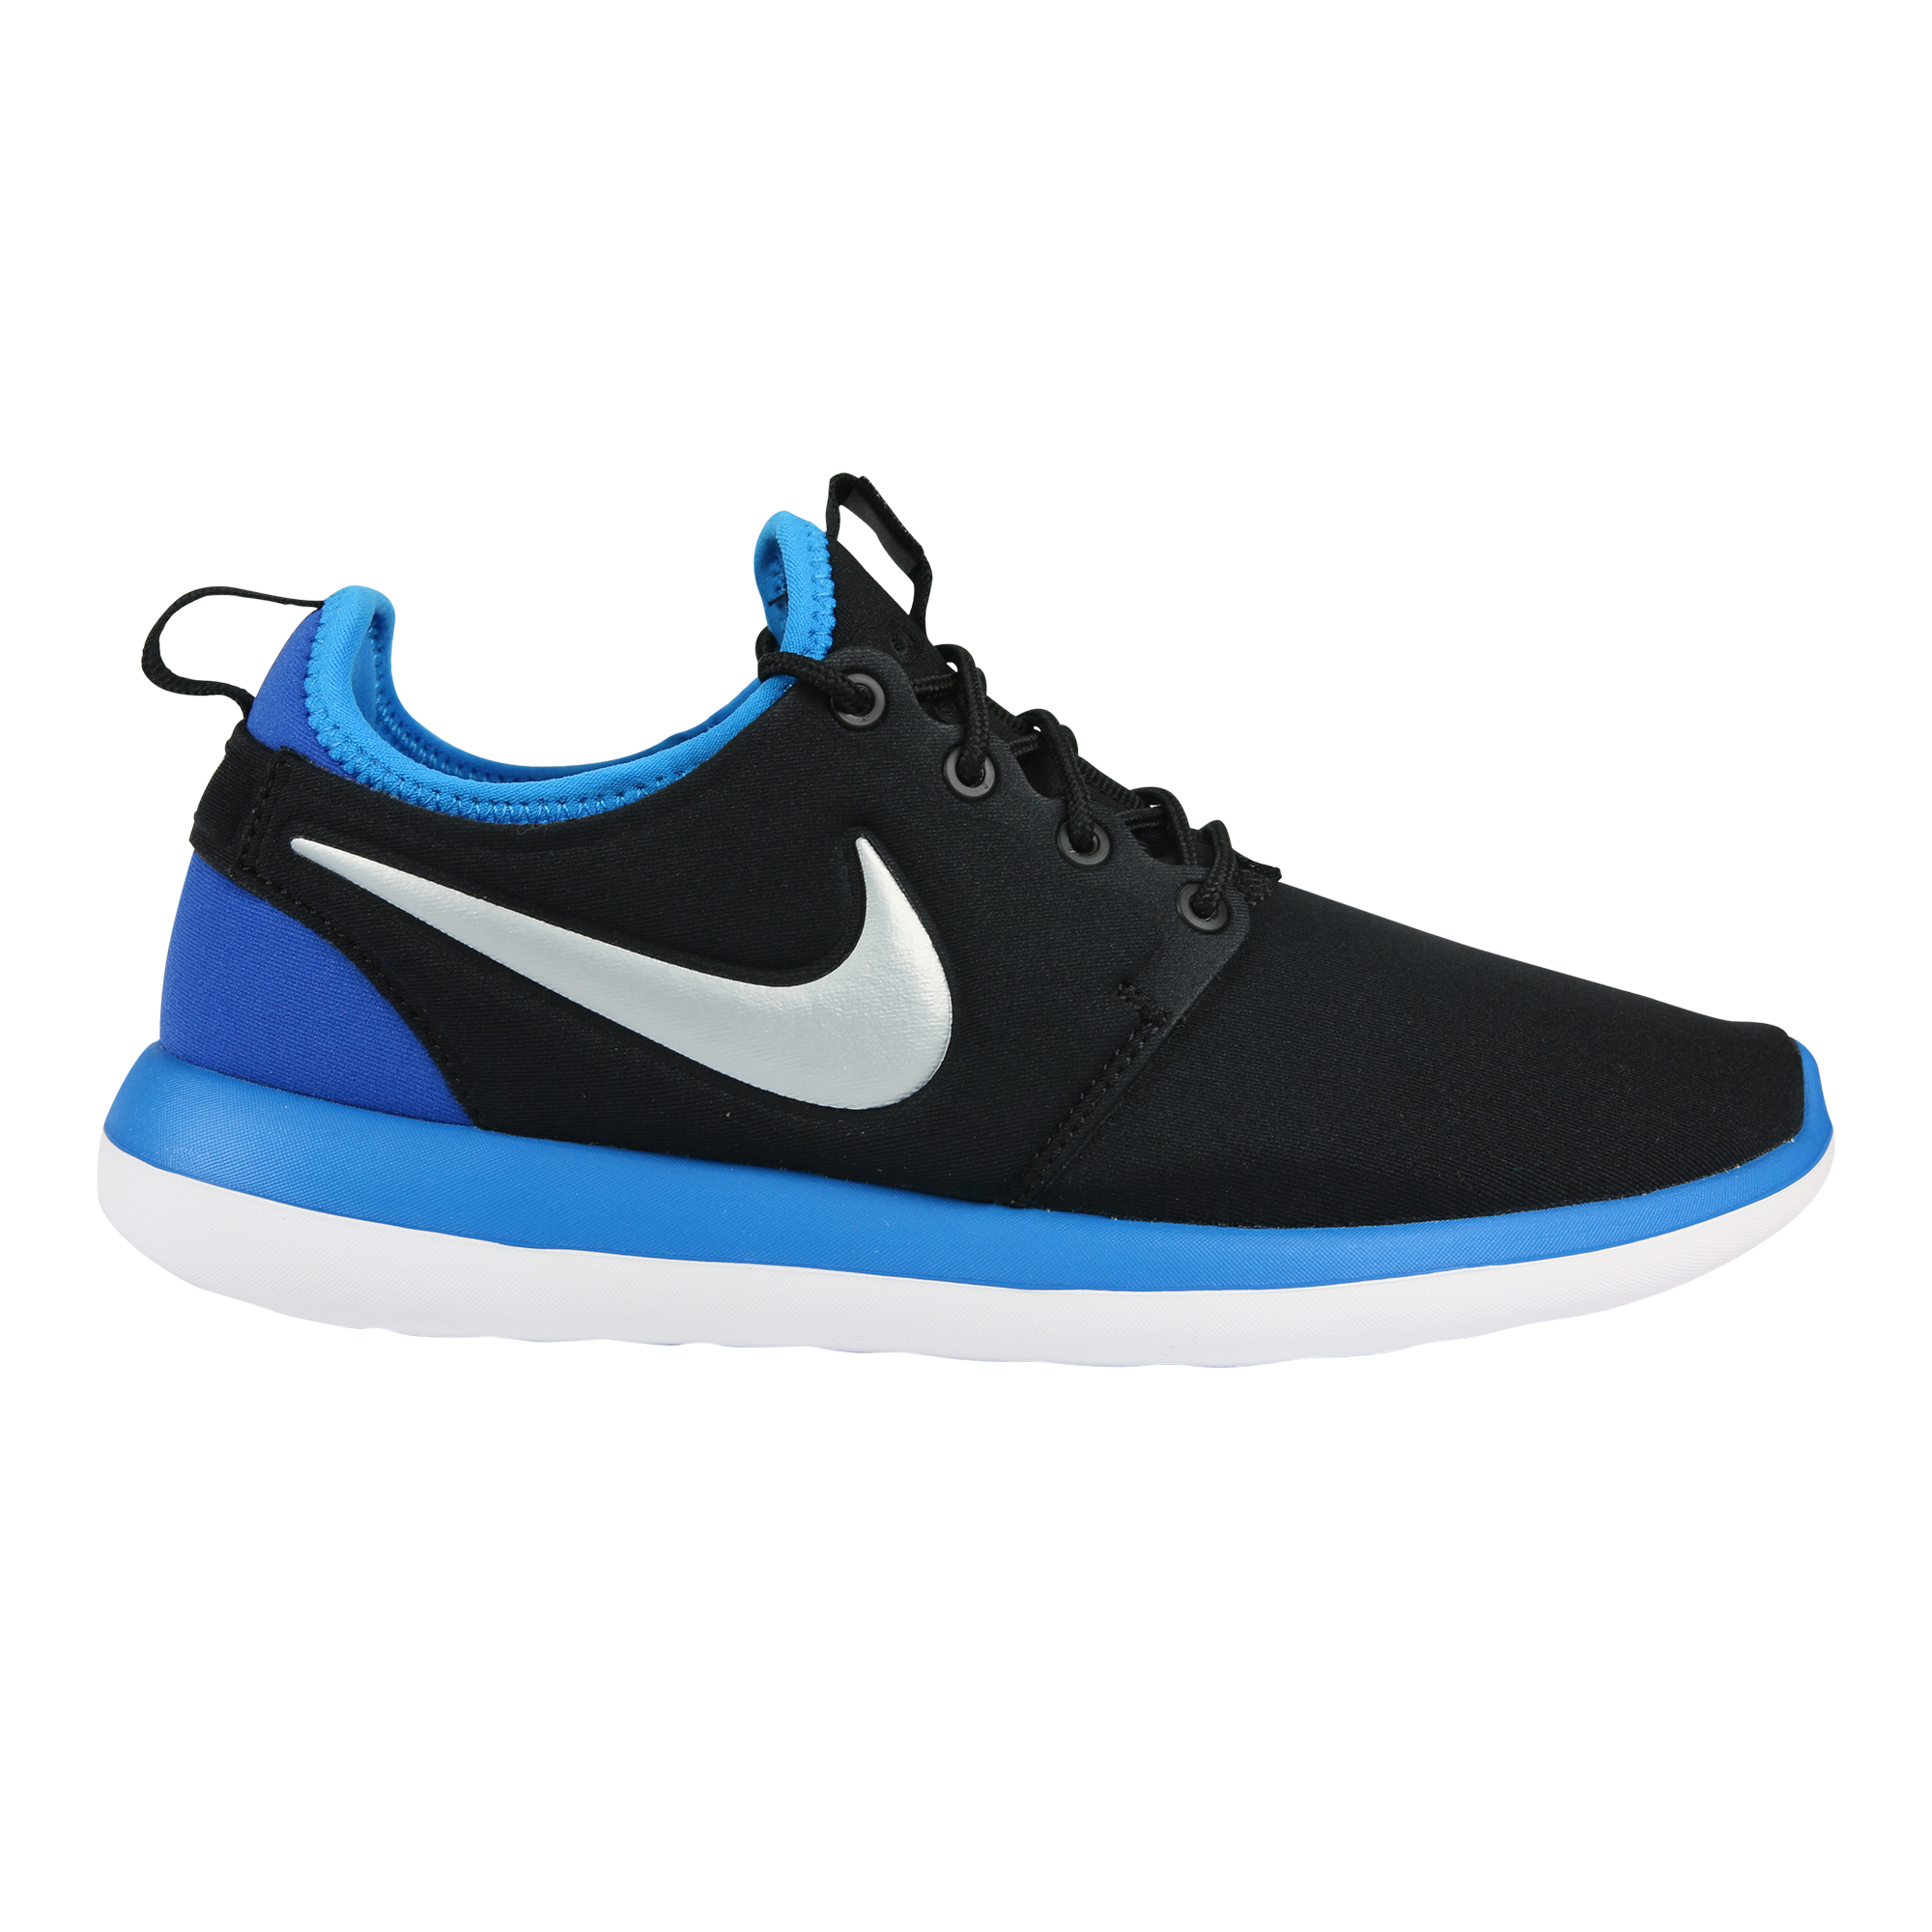 nike roshe two run gs rosherun schuhe turnschuhe sneaker. Black Bedroom Furniture Sets. Home Design Ideas